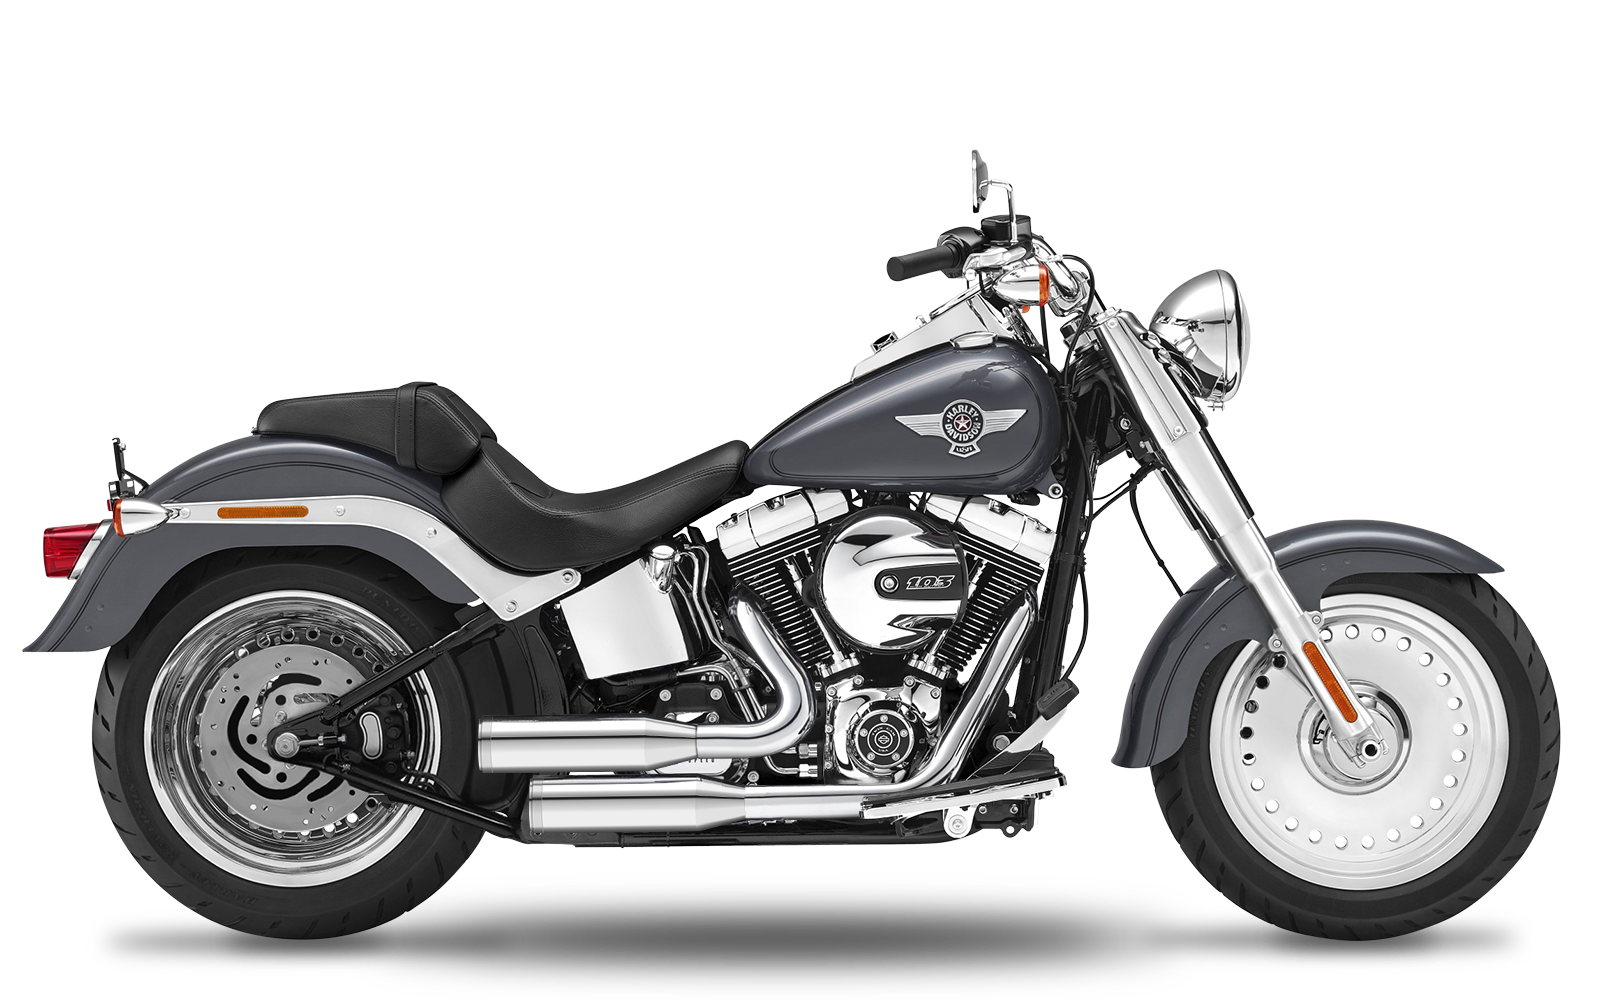 Softail - Fat Boy - TC96 - 2007-2011 - Complete systems adjustable